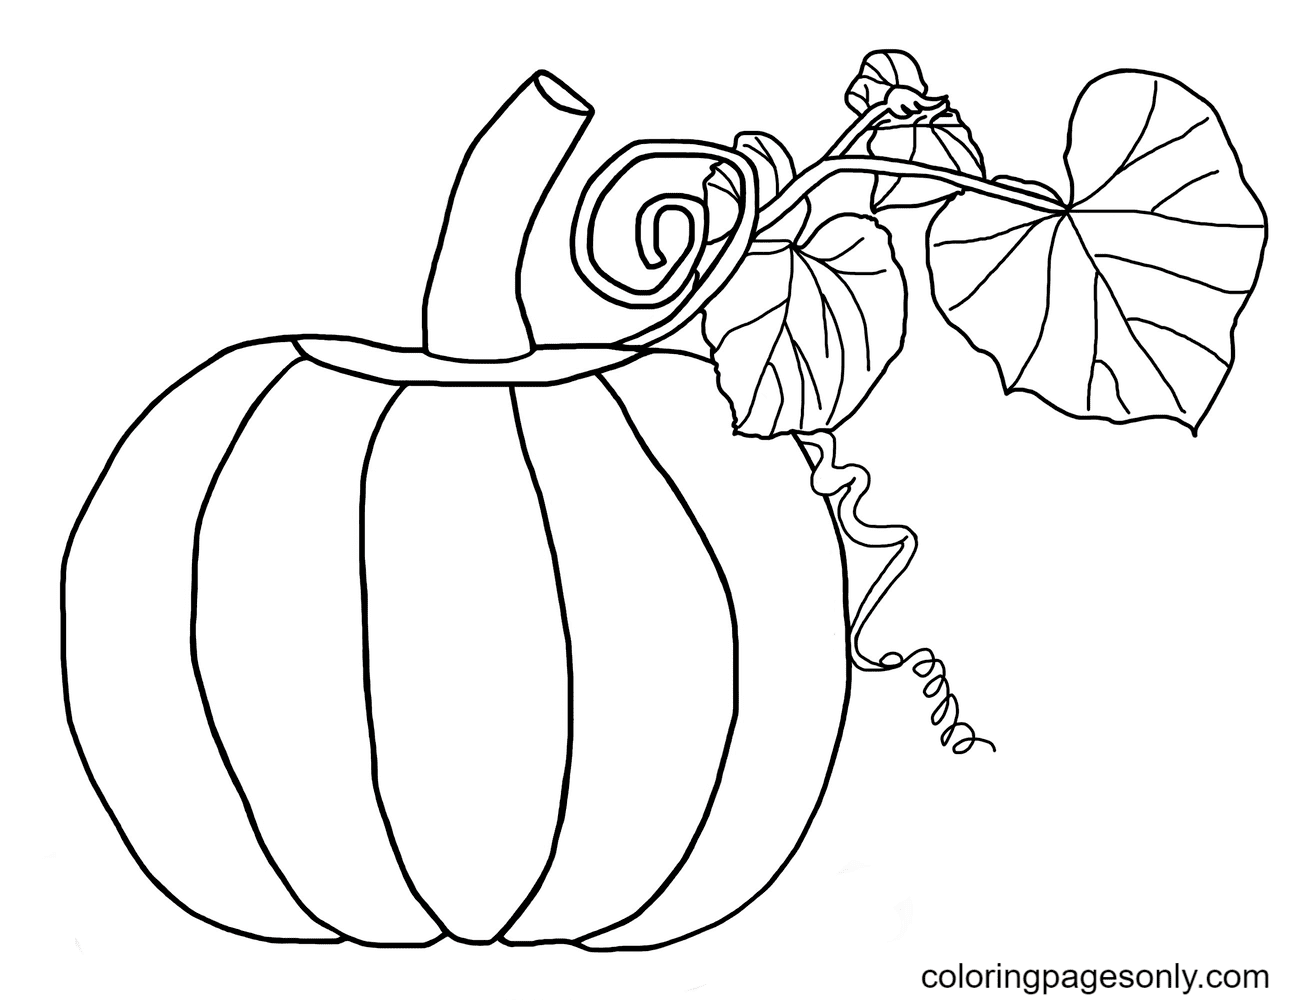 Bearded Pumpkin with Leaves Coloring Page